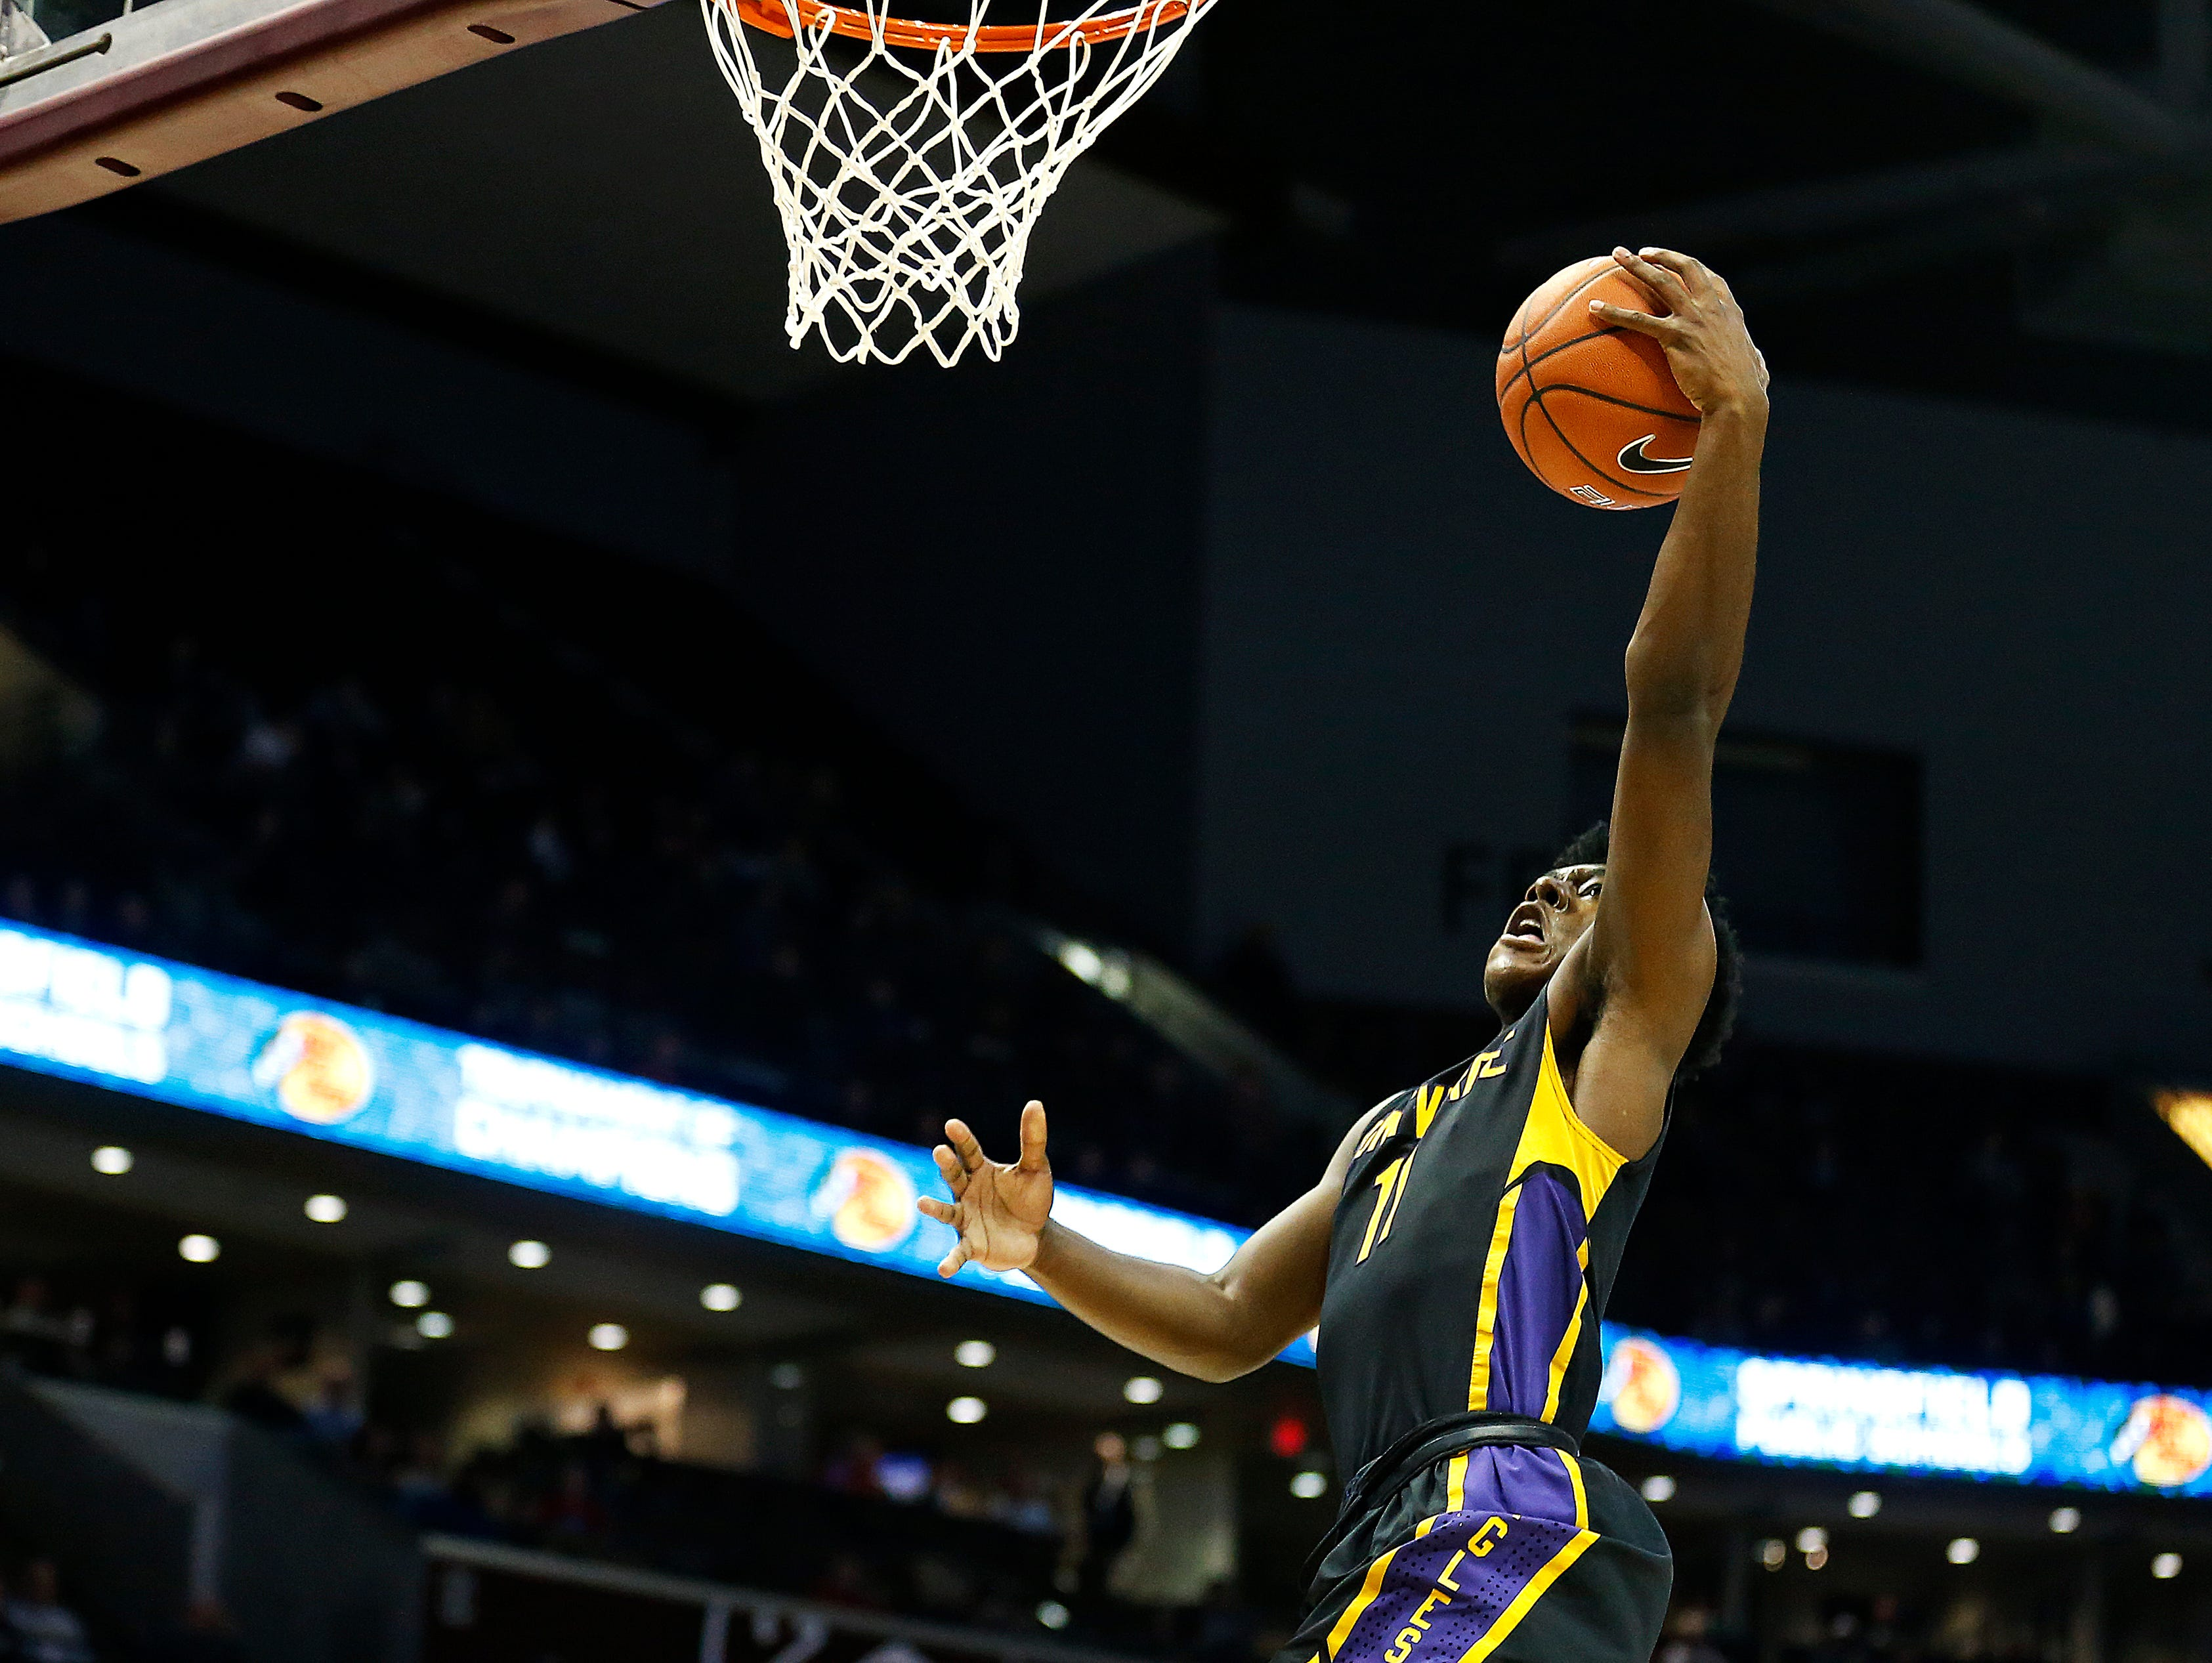 Montverde Academy Eagles (Montverde, Fla.) guard Marcus Carr (11) goes up for a shot during second quarter action of the 2017 Bass Pro Tournament of Champions high school basketball game between the Kickapoo High School Chiefs (Springfield, Mo.) and the Montverde Academy Eagles (Montverde, Fla.) at JQH Arena in Springfield, Mo. on Jan. 12, 2017.